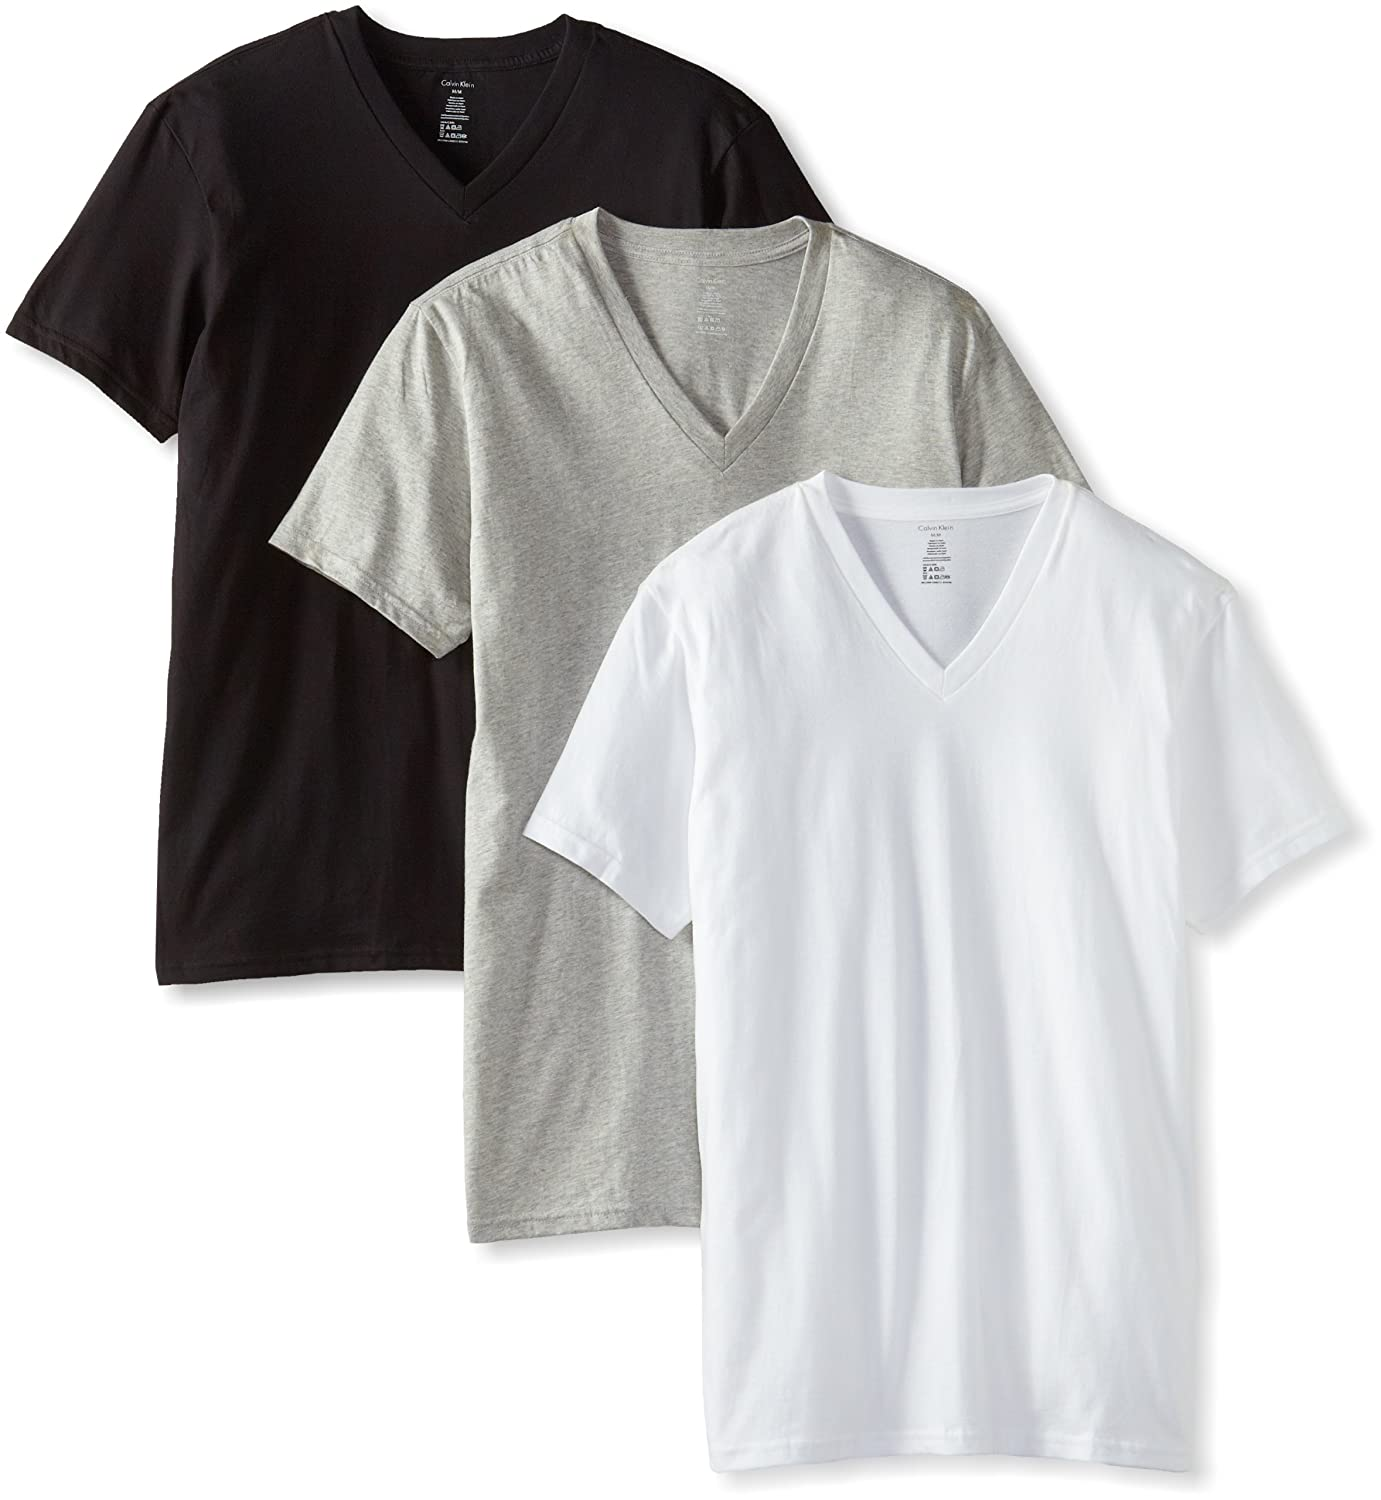 Amazon.com: Calvin Klein Men's 3-Pack Classic V-Neck T-Shirt: Clothing